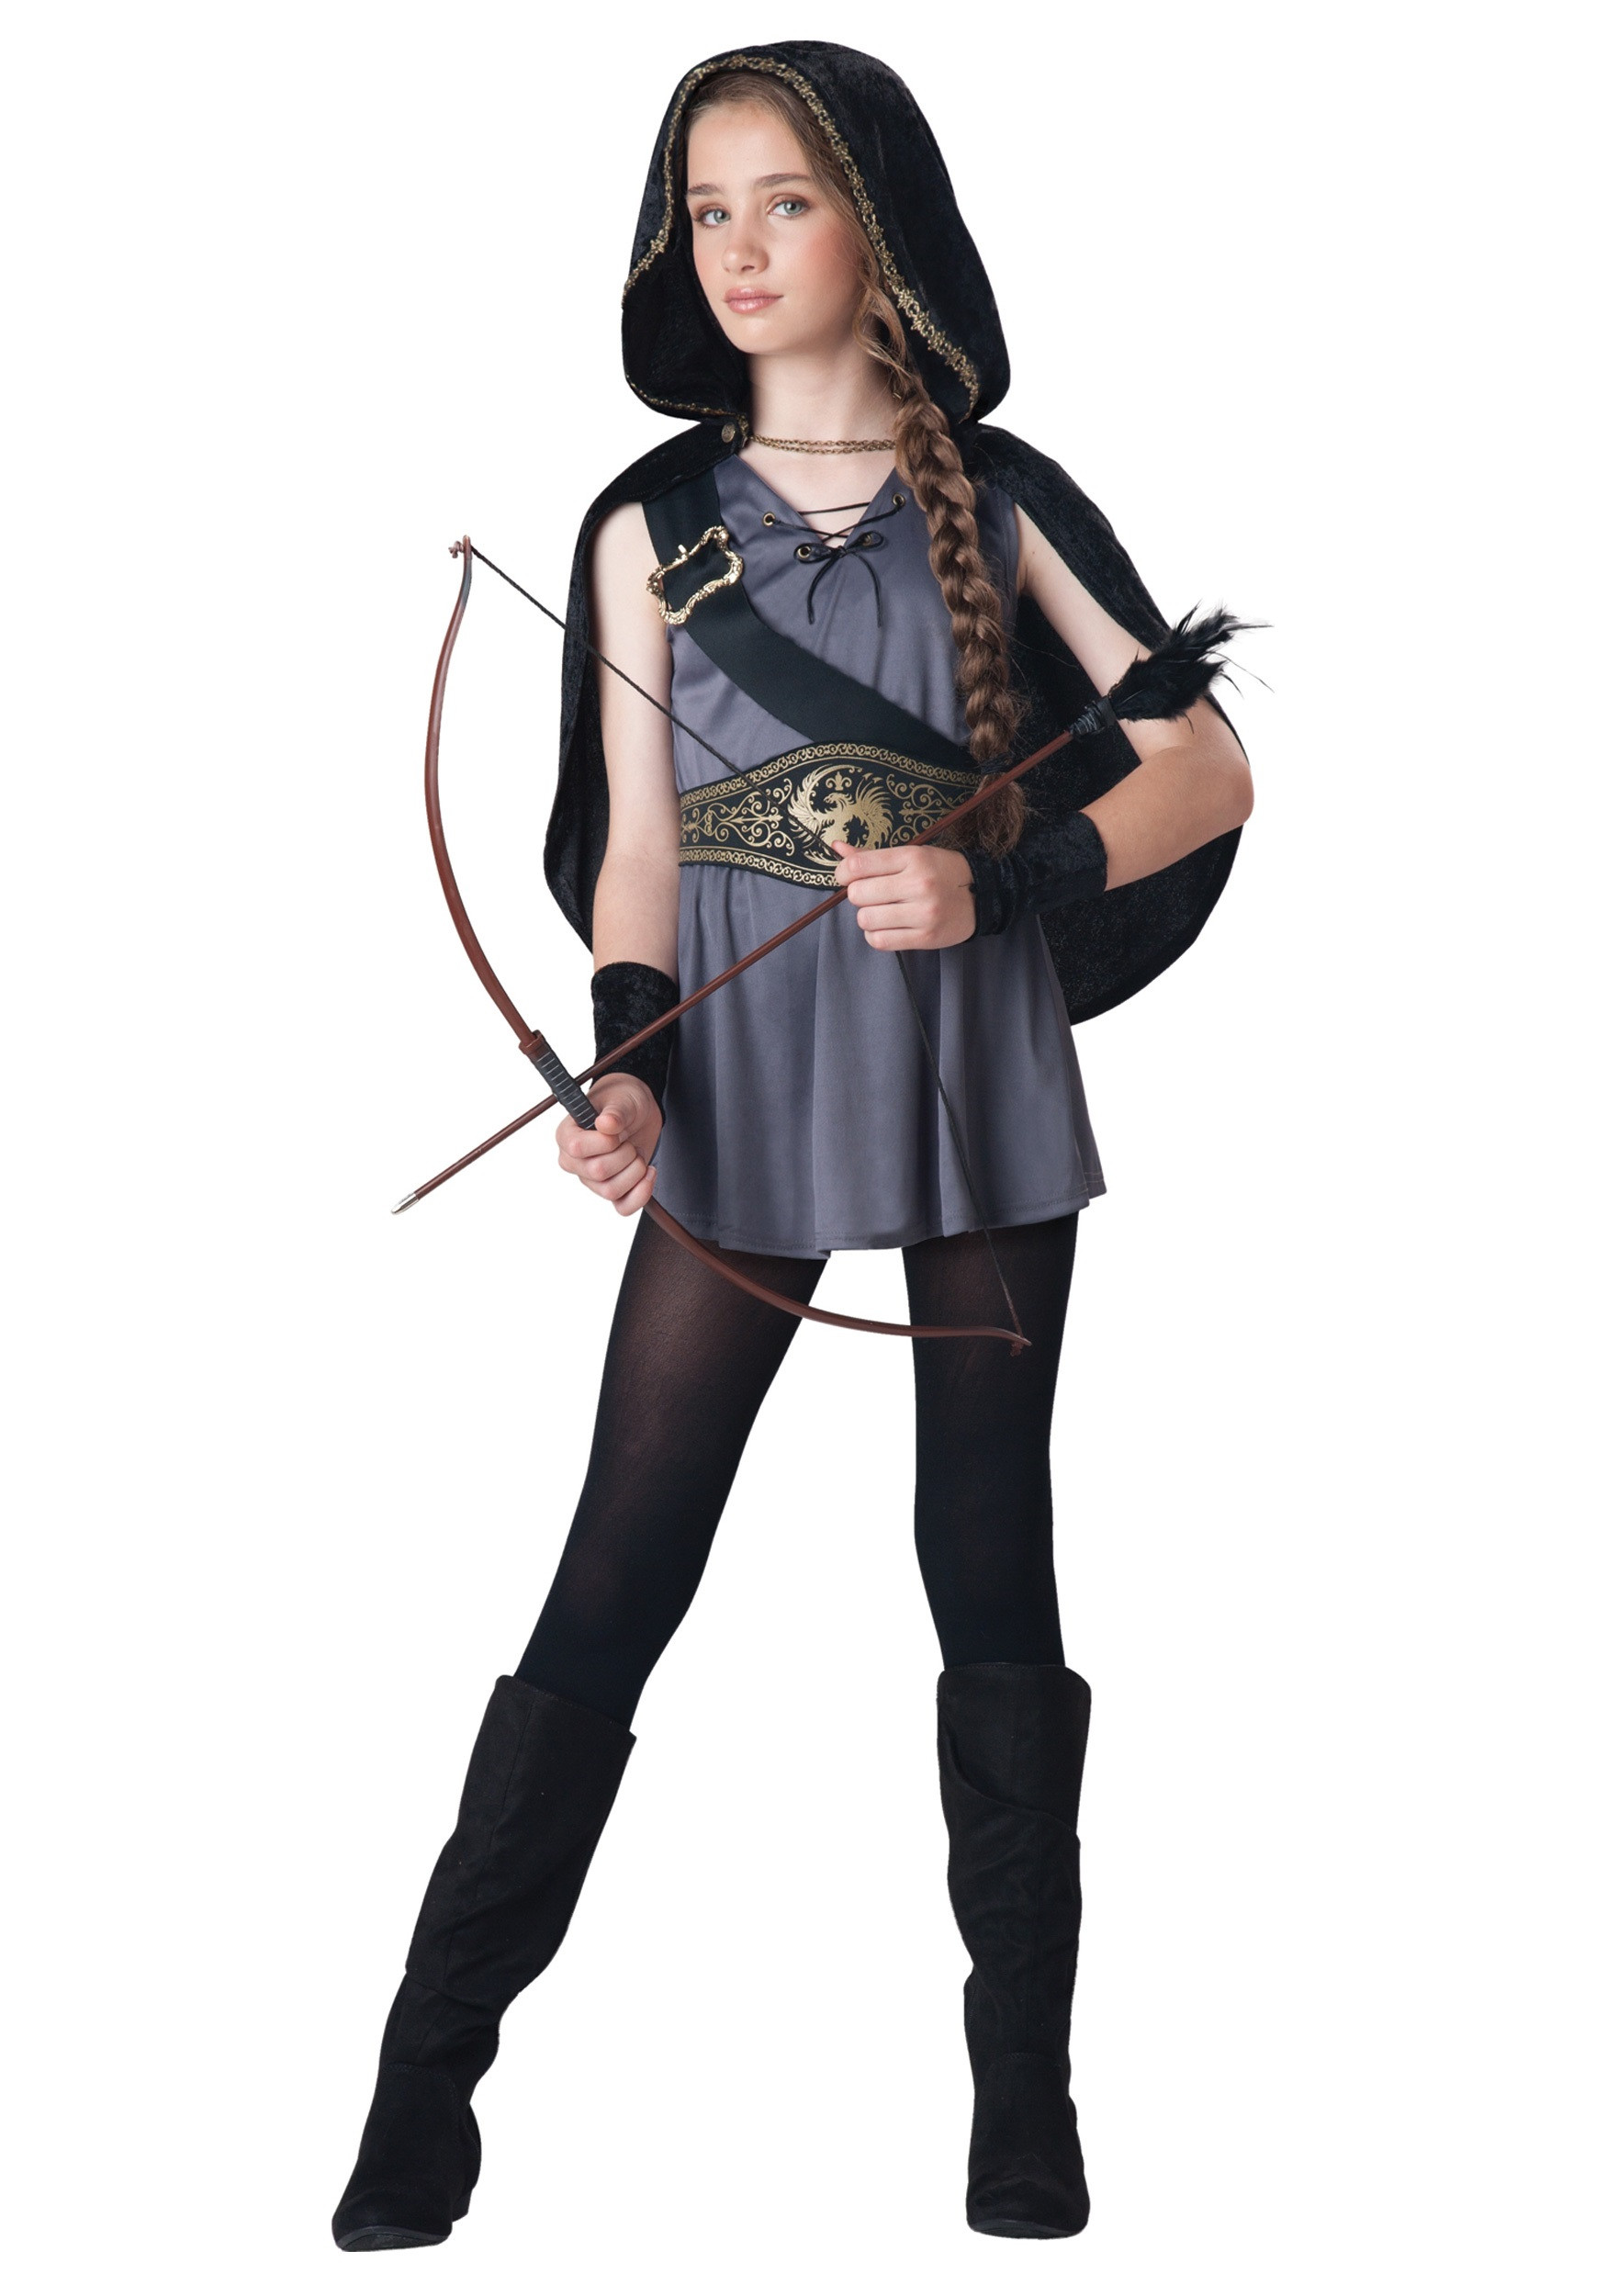 Best ideas about DIY Costumes For Girls . Save or Pin Girls Hooded Huntress Costume Now.